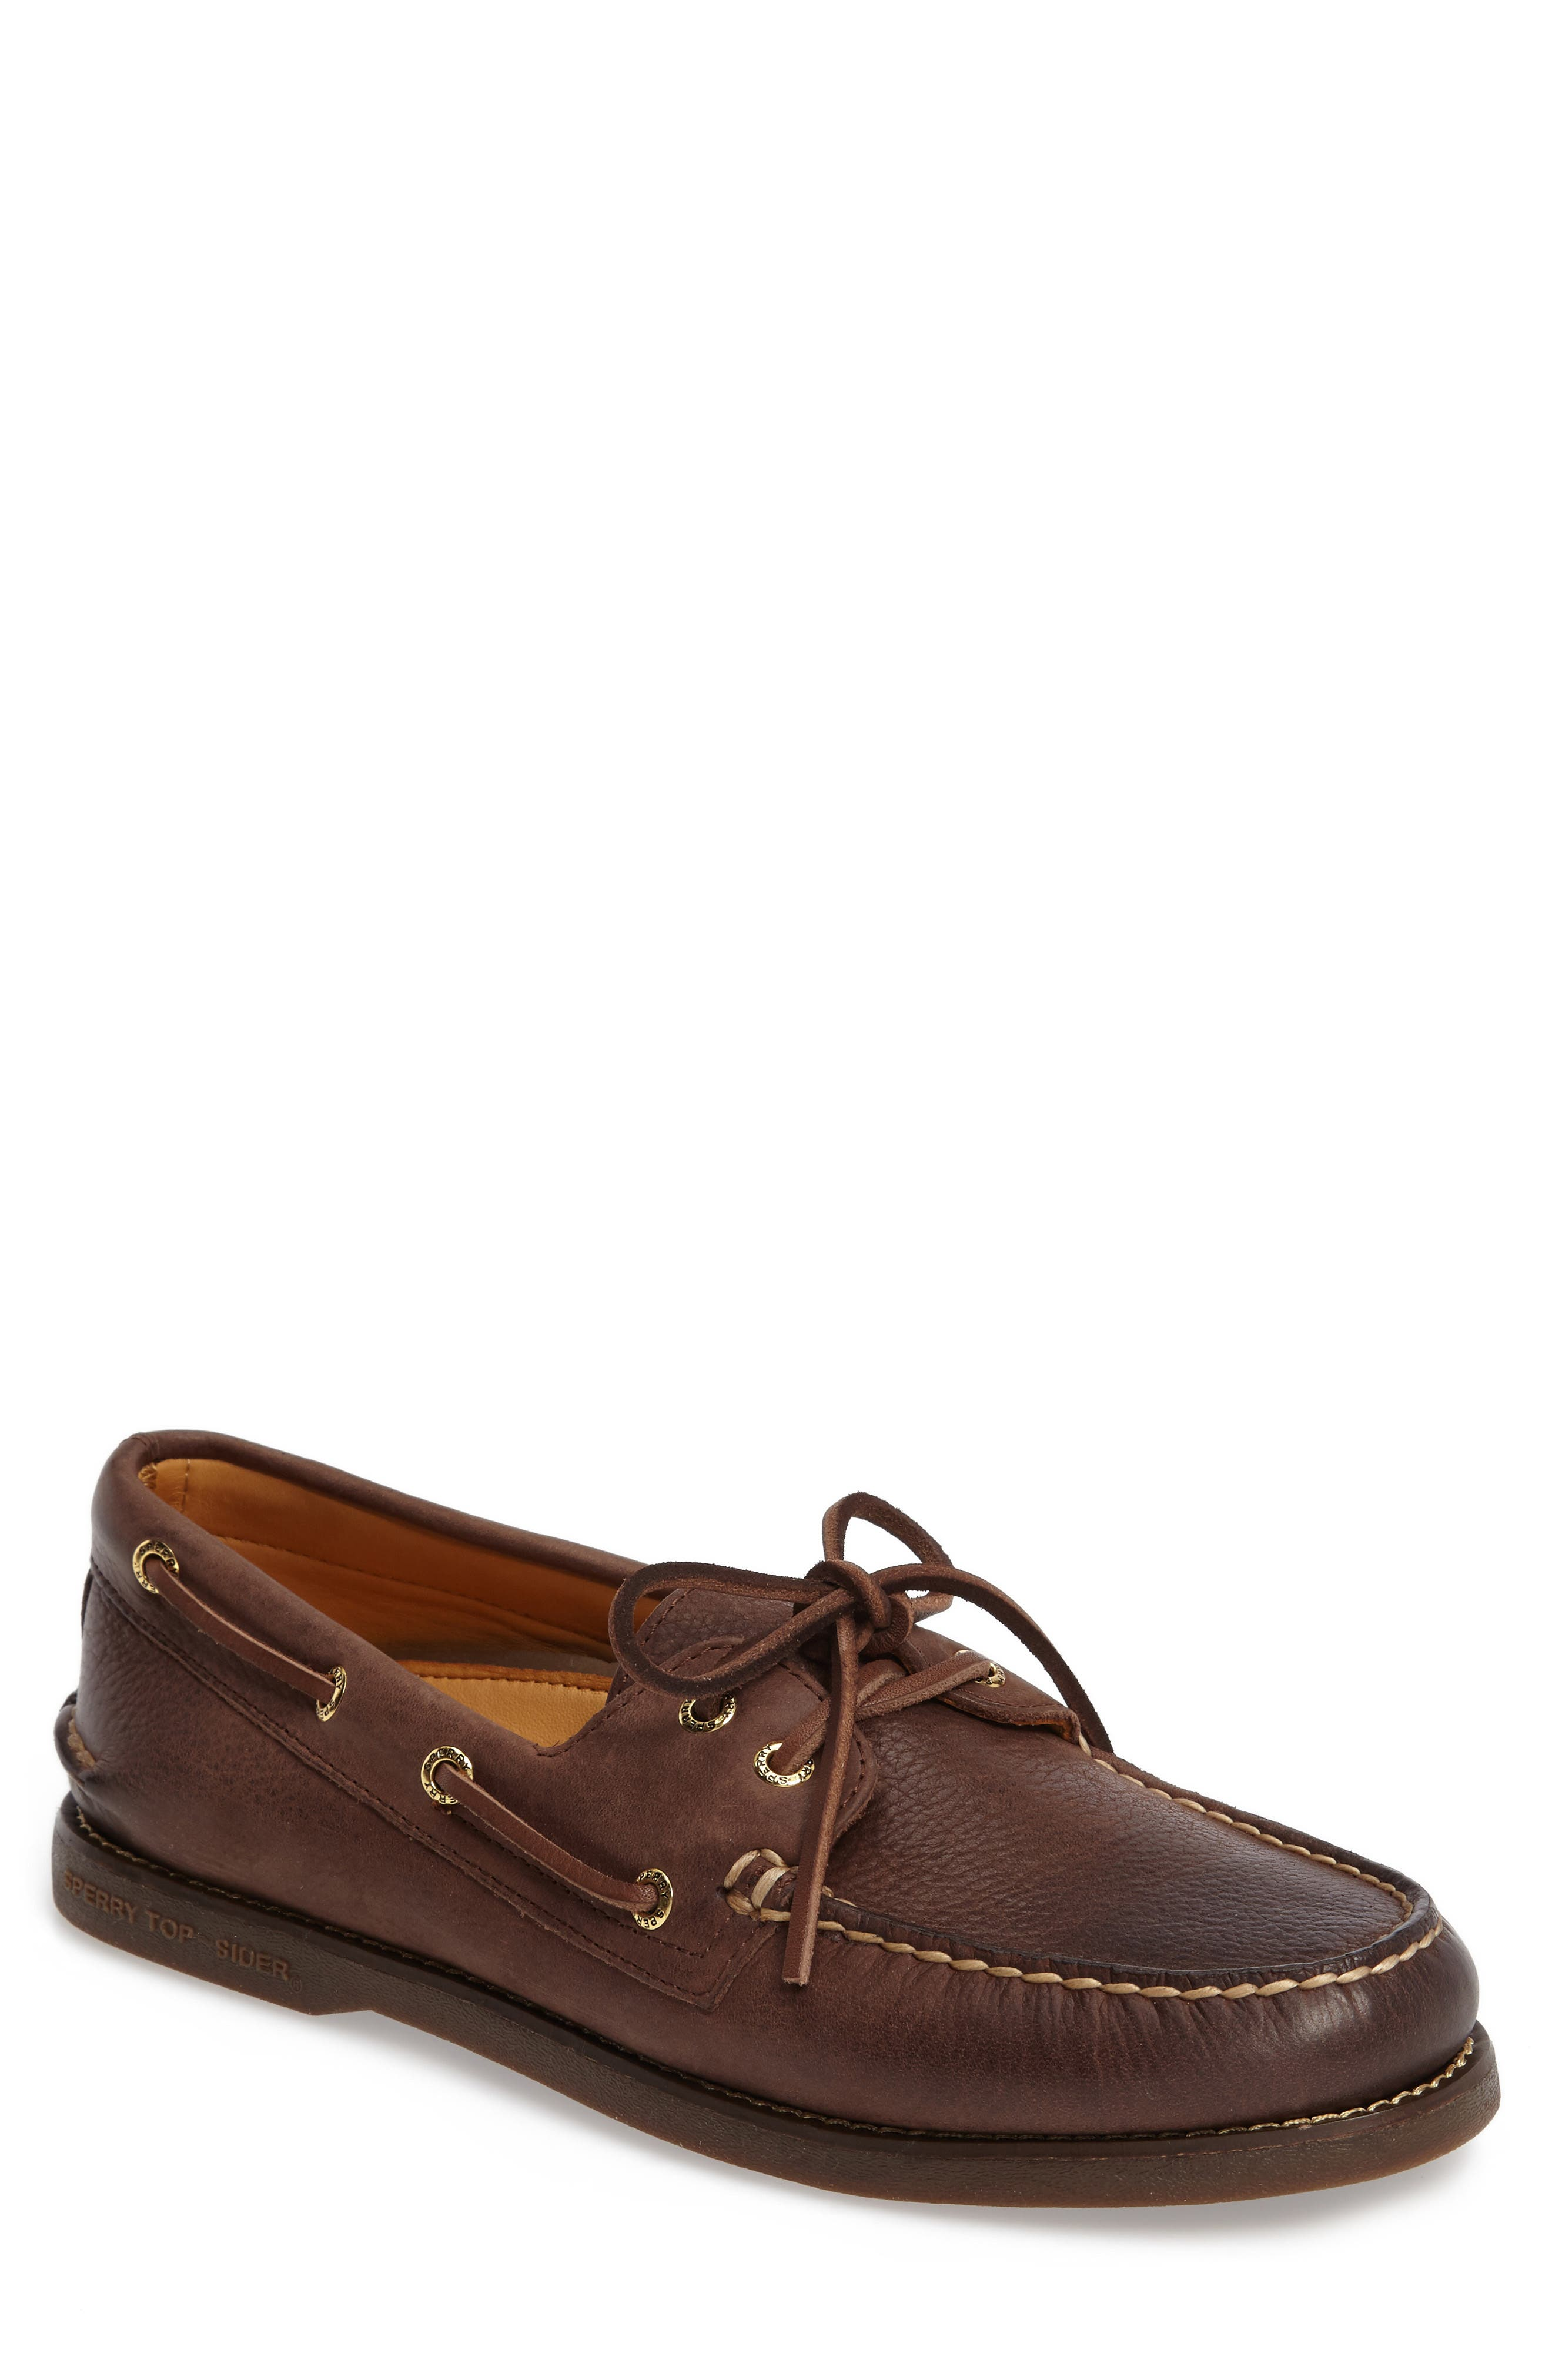 'Gold Cup - Authentic Original' Boat Shoe,                         Main,                         color, CHOCOLATE